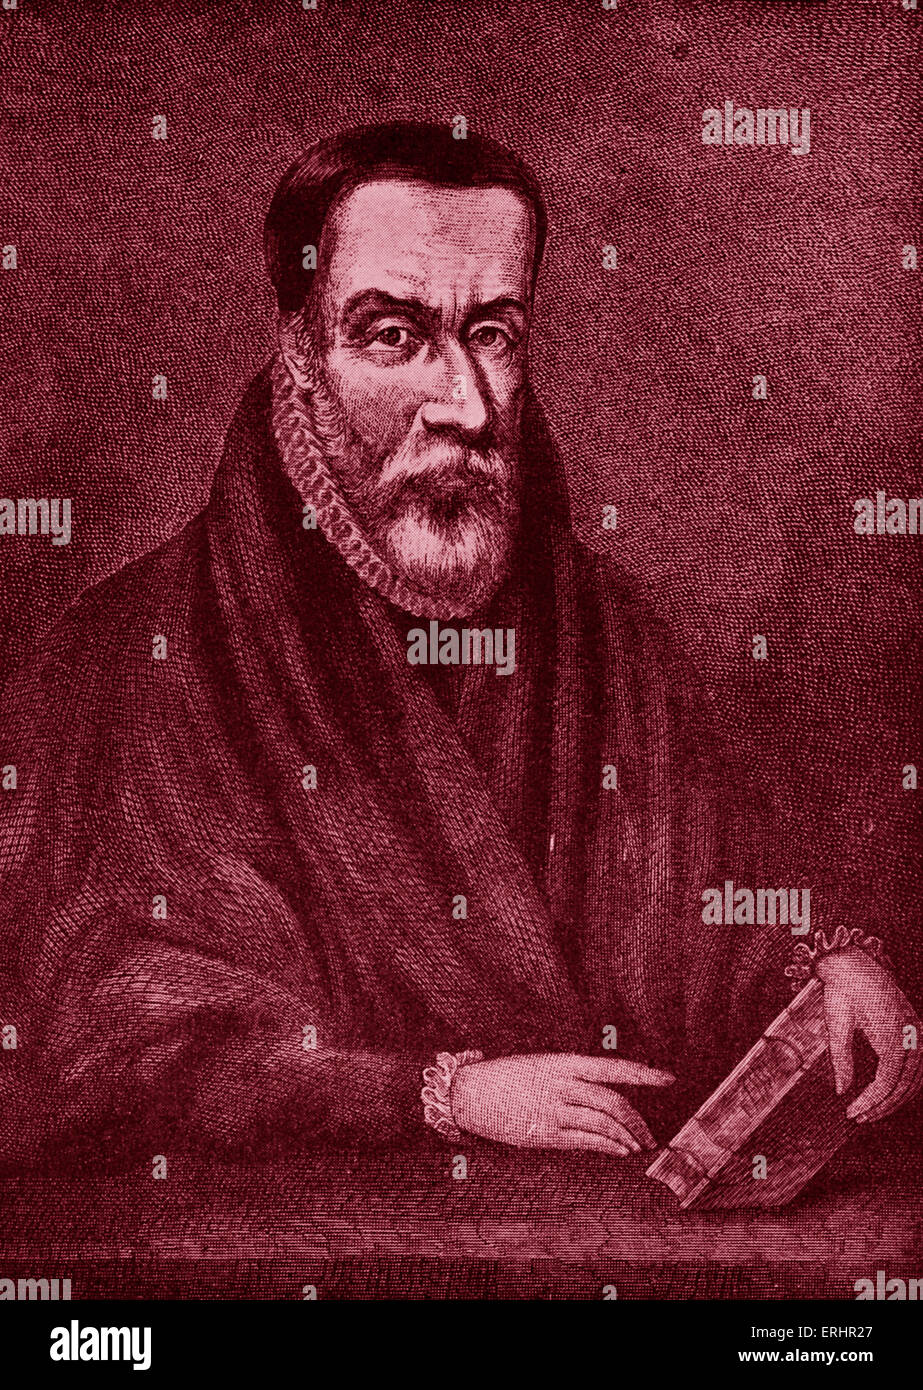 William Tyndale - portrait of the Religious reformer and scholar who  translated the Bible into the Early Modern English of his